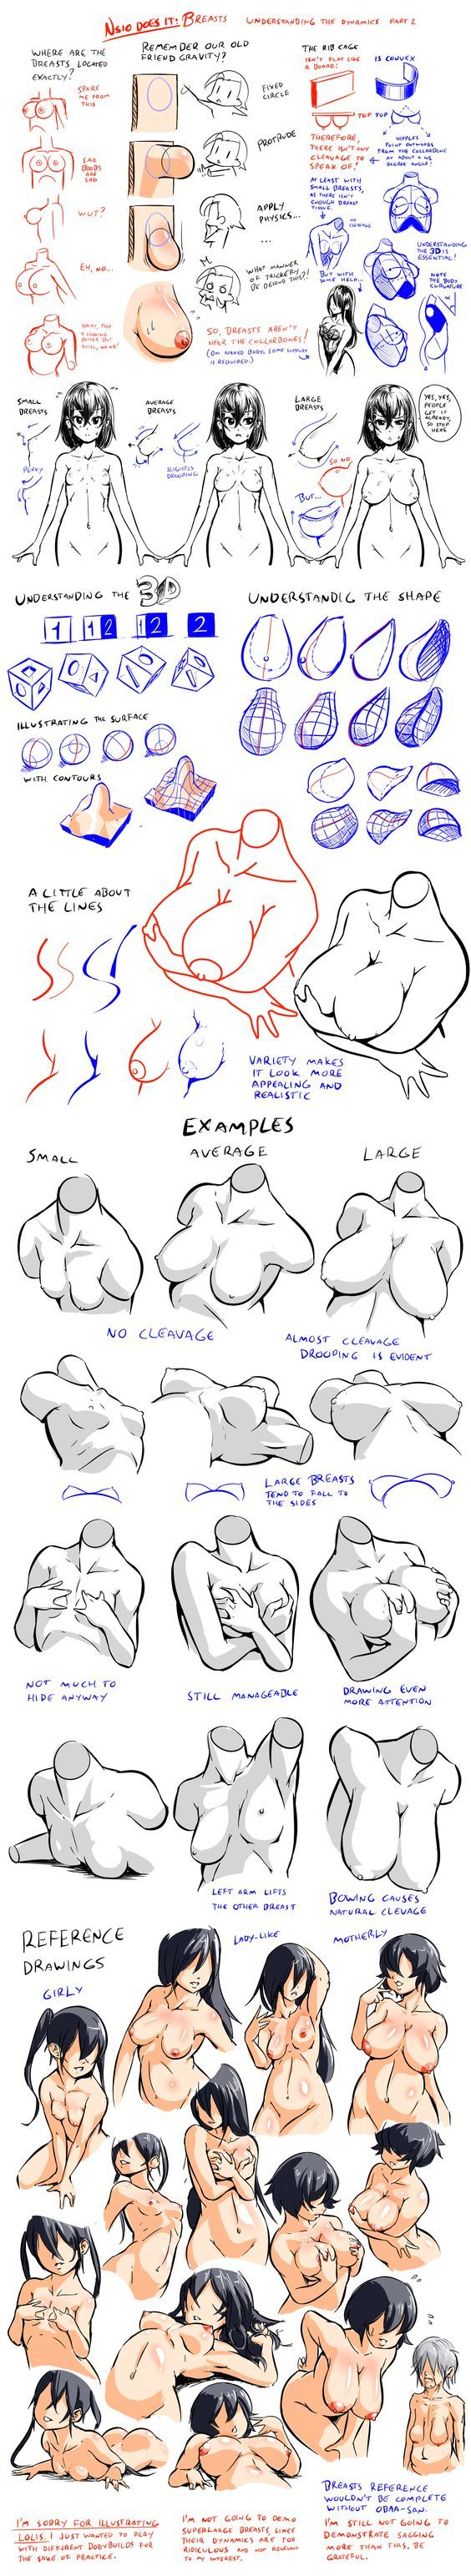 Breasts - Understanding the Dynamics 2 by Nsio on deviantART http://nsio.deviantart.com/art/Breasts-Understanding-the-Dynamics-2-376631488: